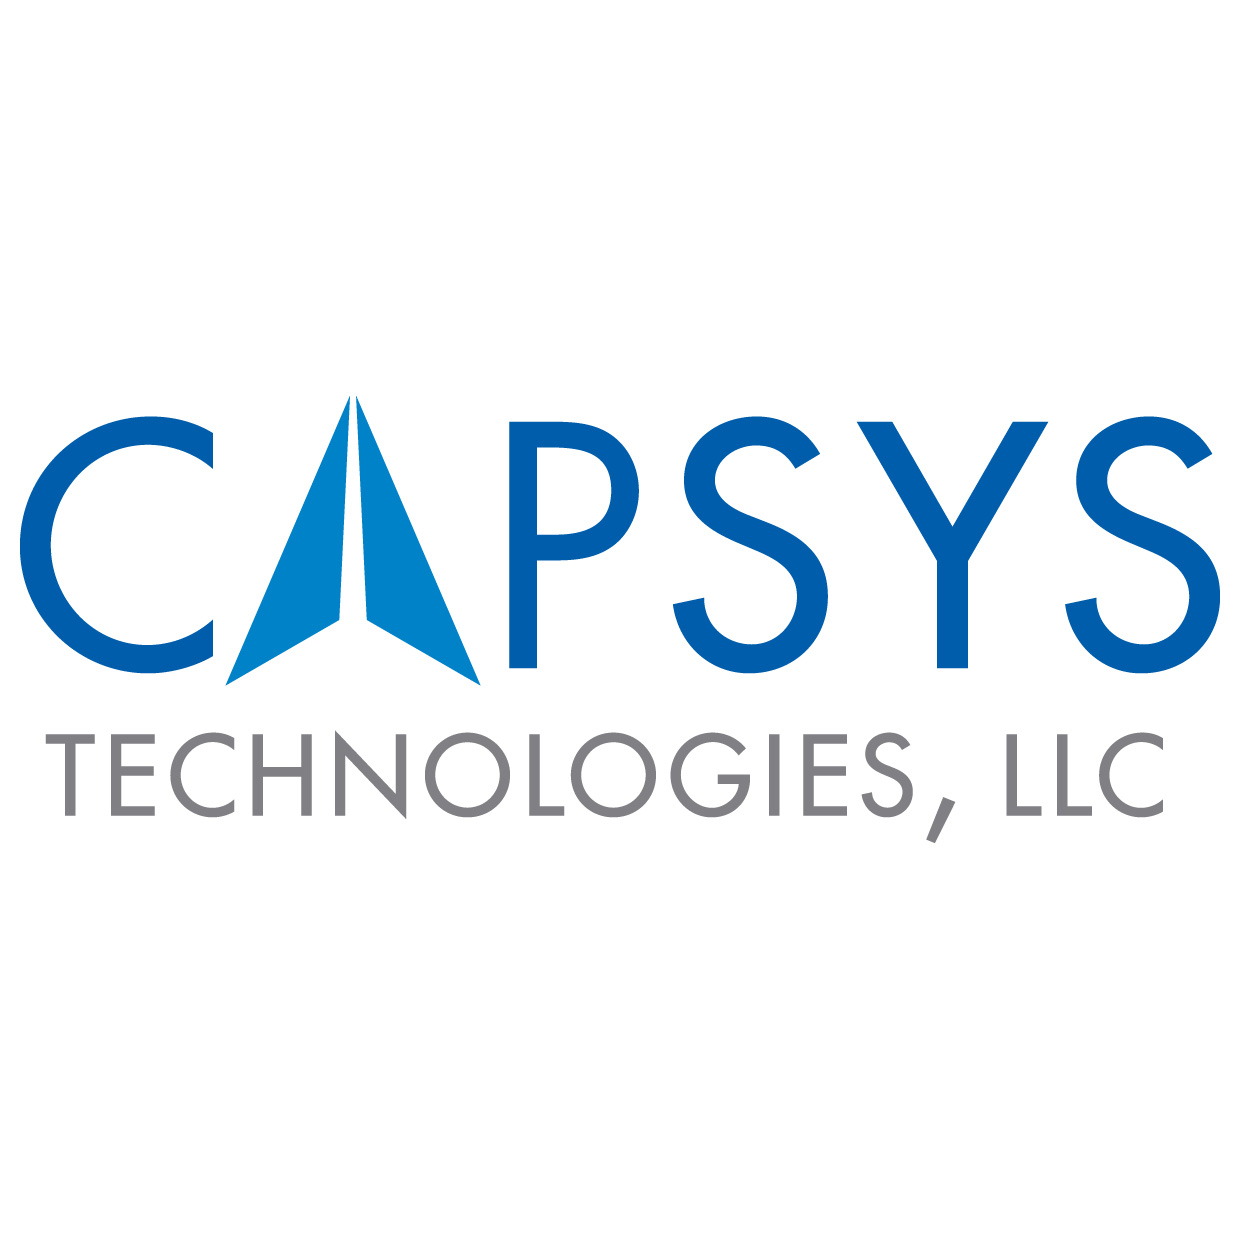 capsys technologies